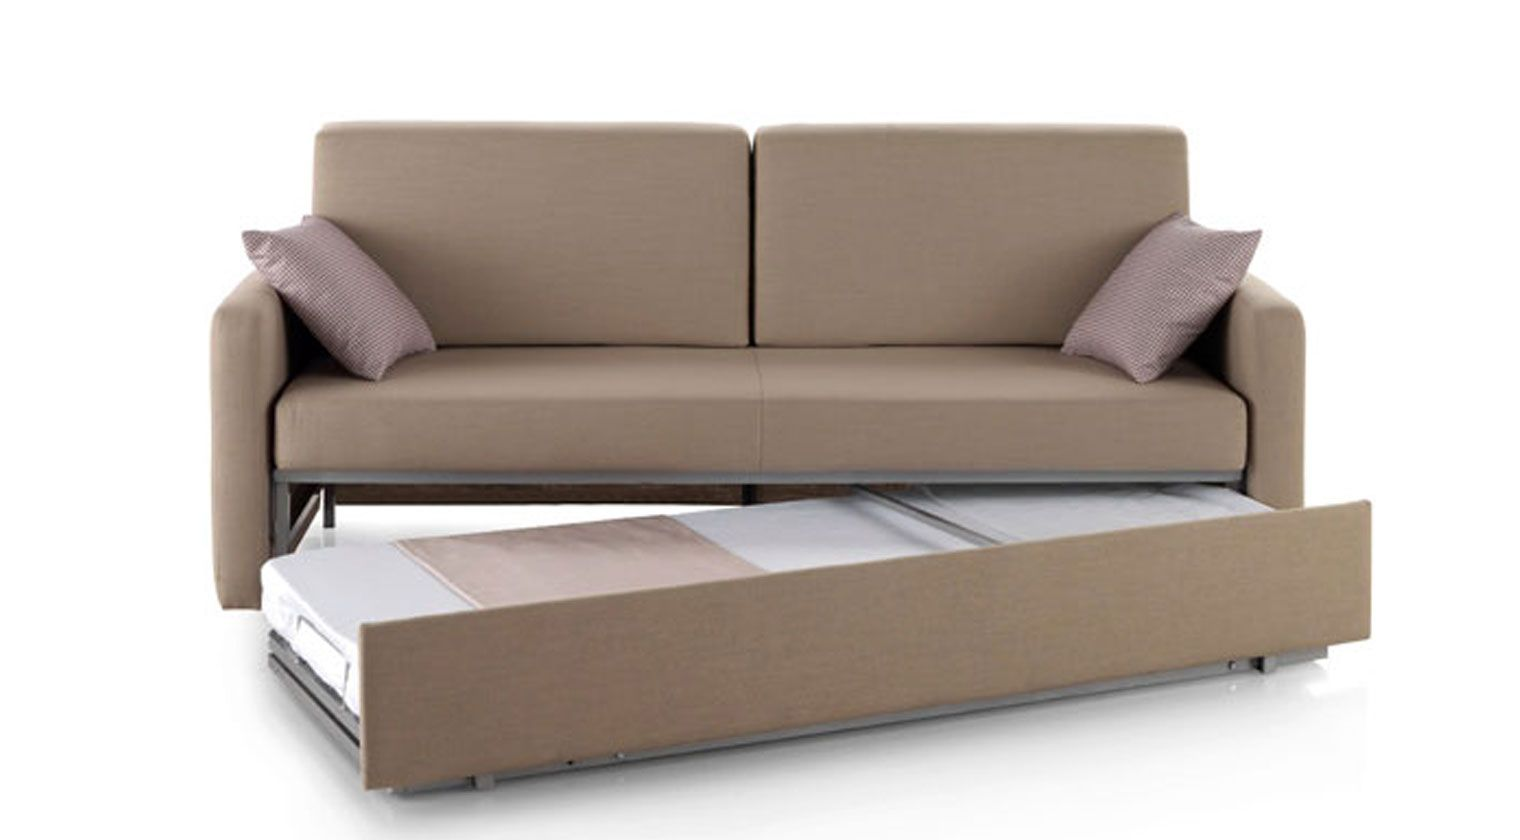 Comprar sof cama tours 2 plazas cama de 120x190 cm bonus for Sofa 2 plazas extensible